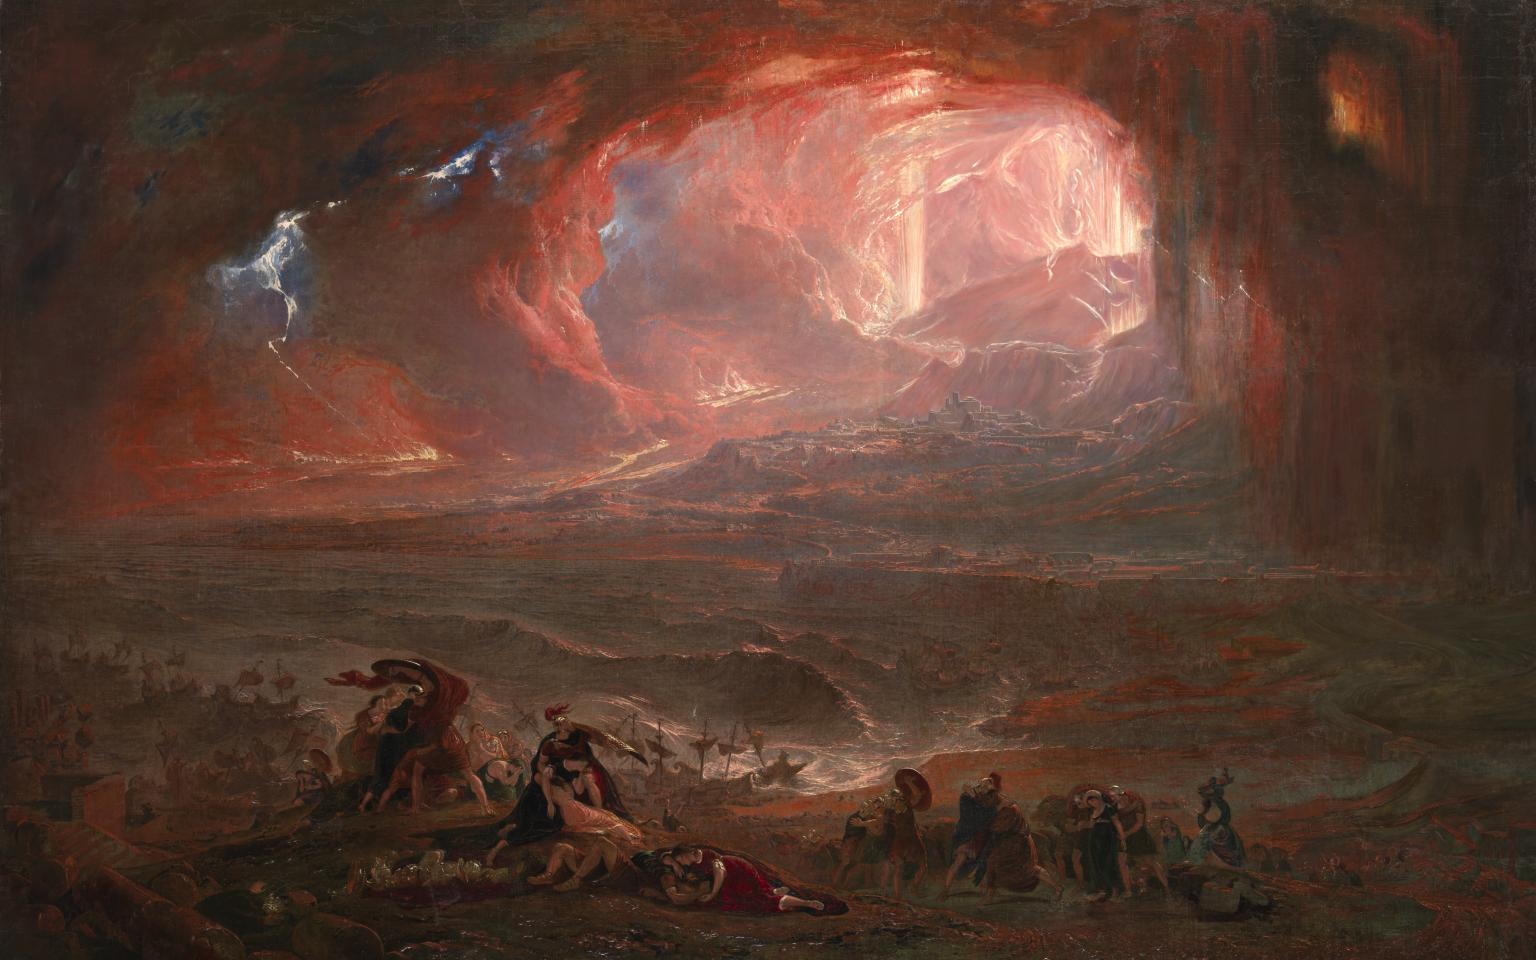 John Martin. The Destruction of Pompei and Herculaneum. 1822-2